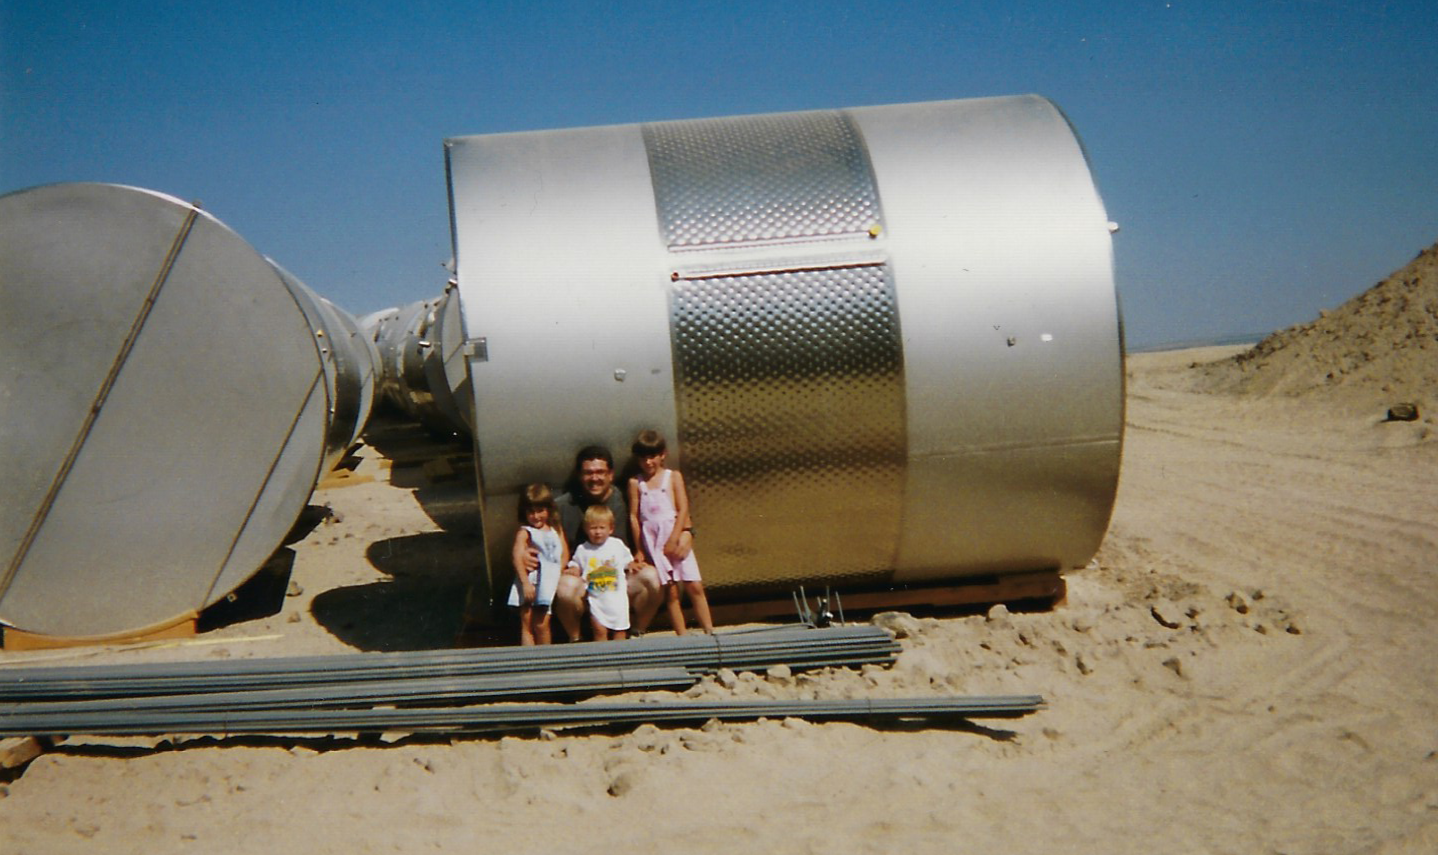 A man sits with three young children against a large metal cylinder. The are around them is dry dirt and the sky is bright blue.